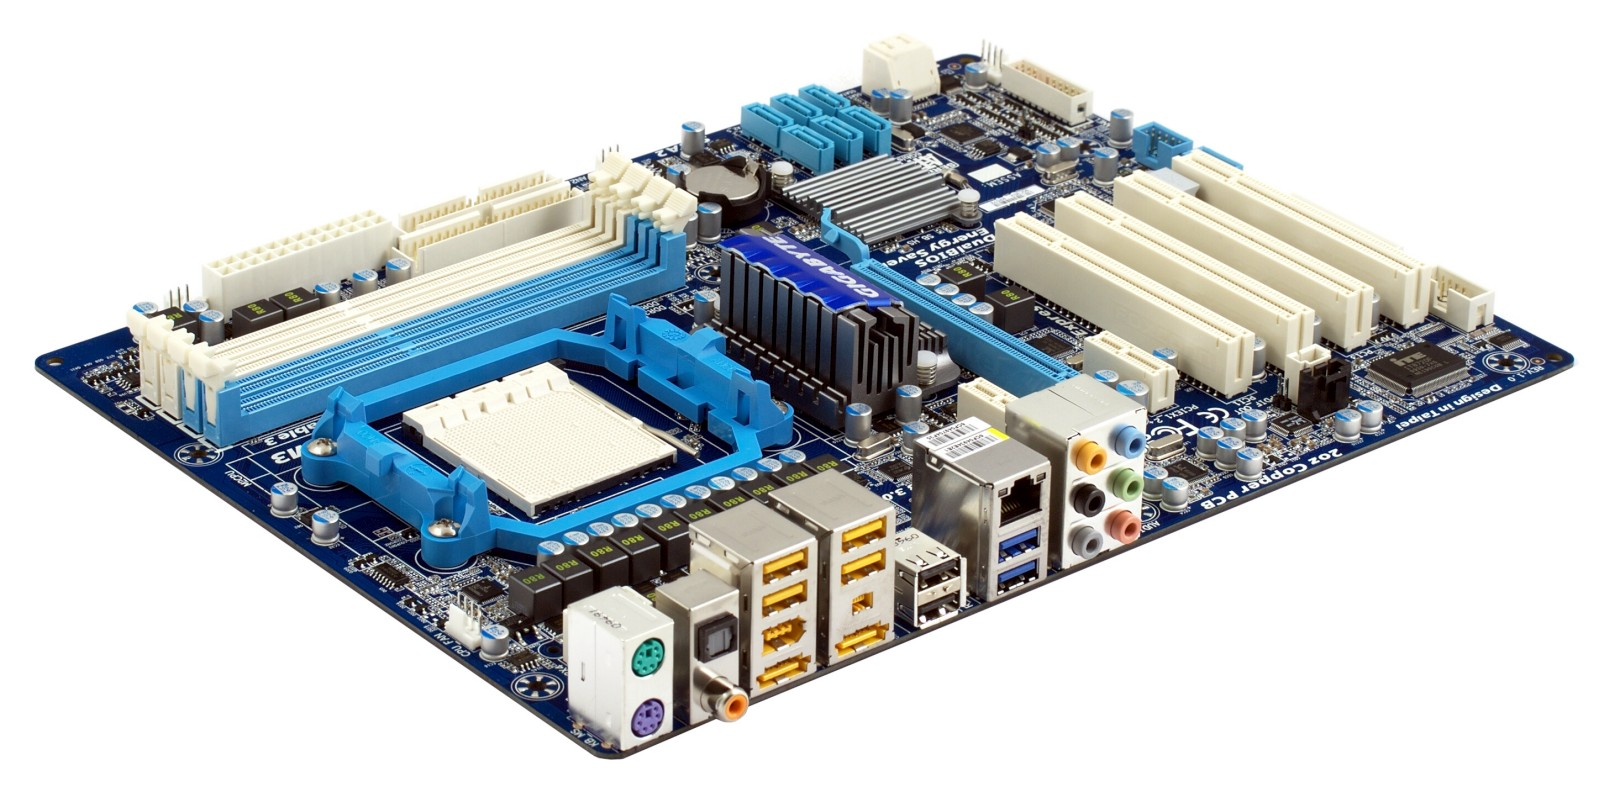 Firewire Motherboard Back Wire Center Fukang Air Conditioner Circuit Diagram Signalprocessing Ixbt Labs Gigabyte Ga 770ta Ud3 Page 1 Introduction Rh Ixbtlabs Com Header